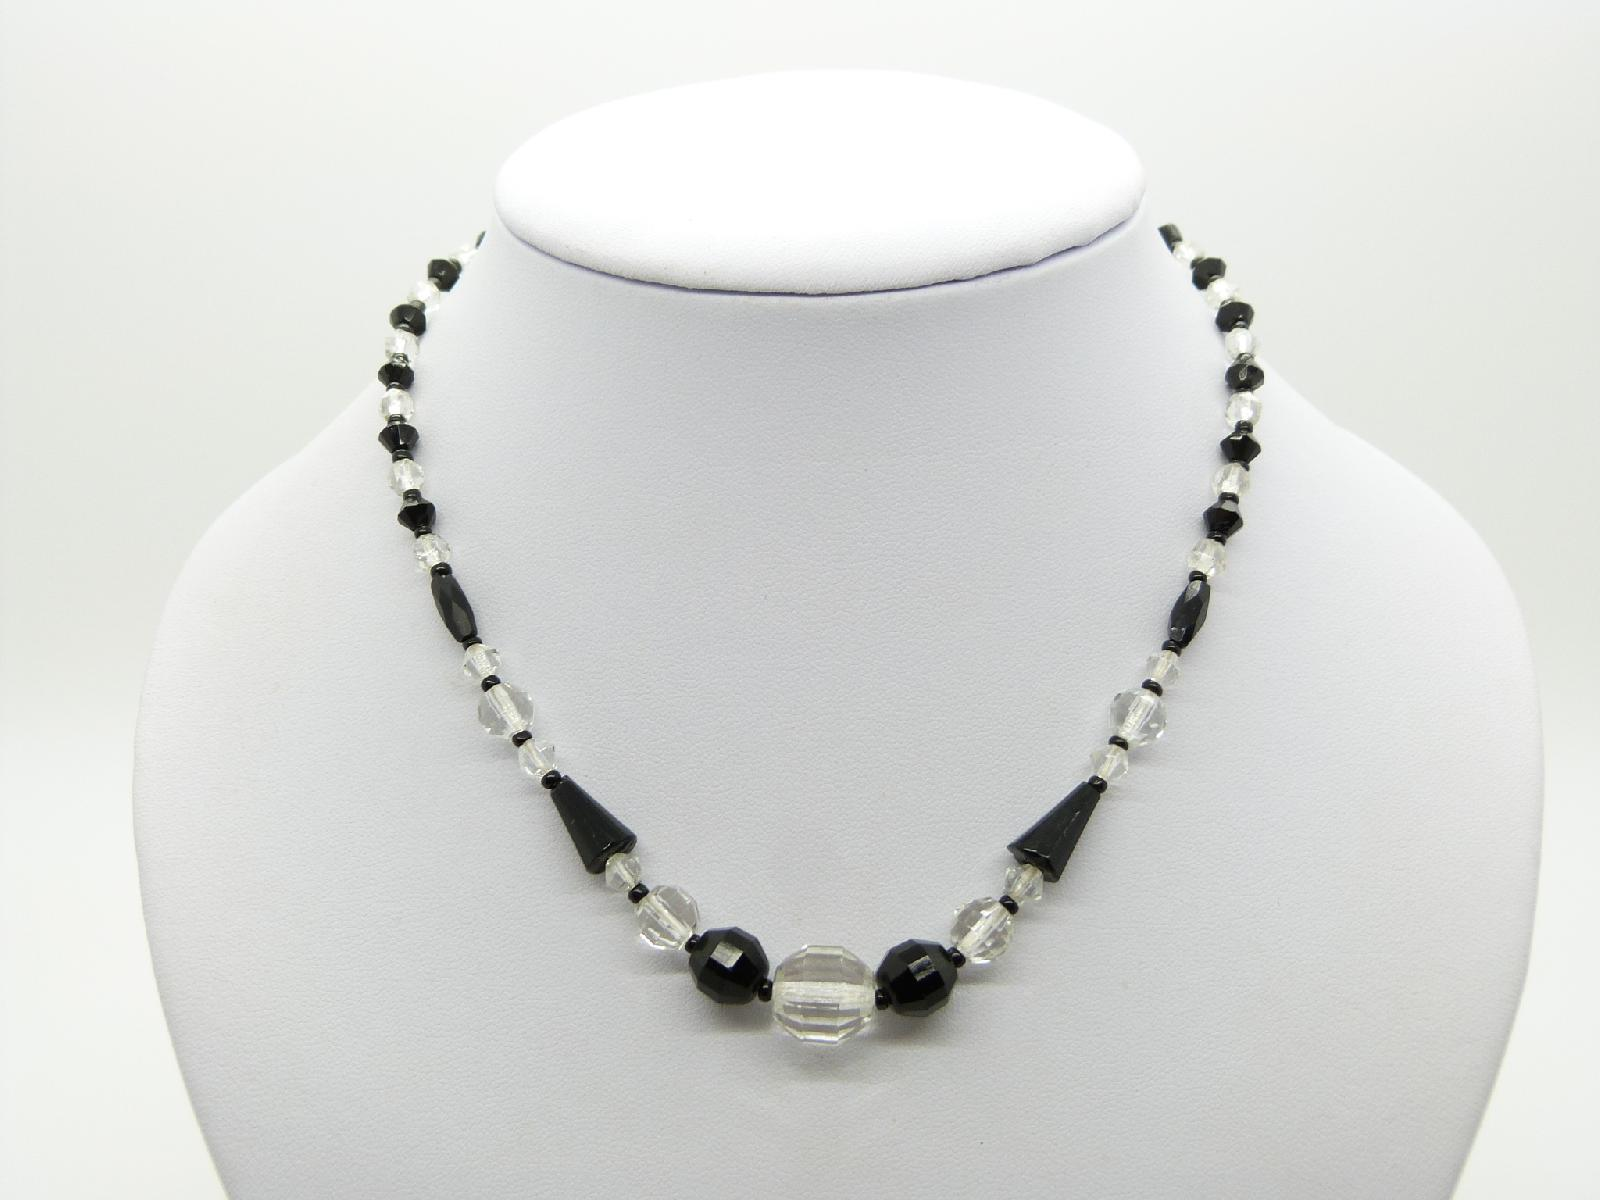 £20.00 - Vintage 30s Monochrome Black and White Crystal Glass Bead Necklace 43cms Long